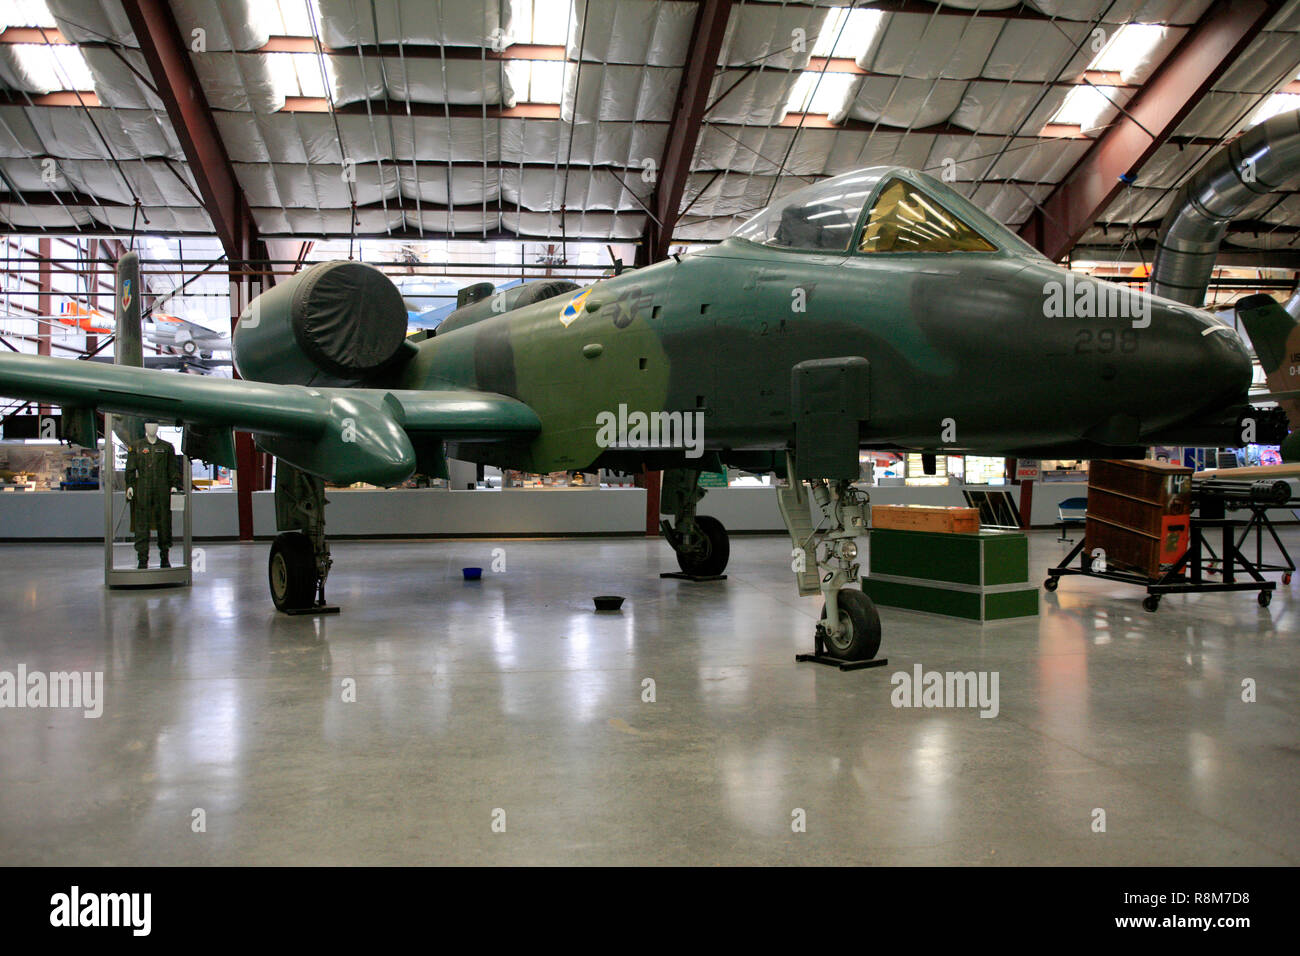 US Air Force Fairchild Republic A-10 Thunderbolt II fighter plane on display at the Pima Air & Space Museum in Tucson, AZ - Stock Image